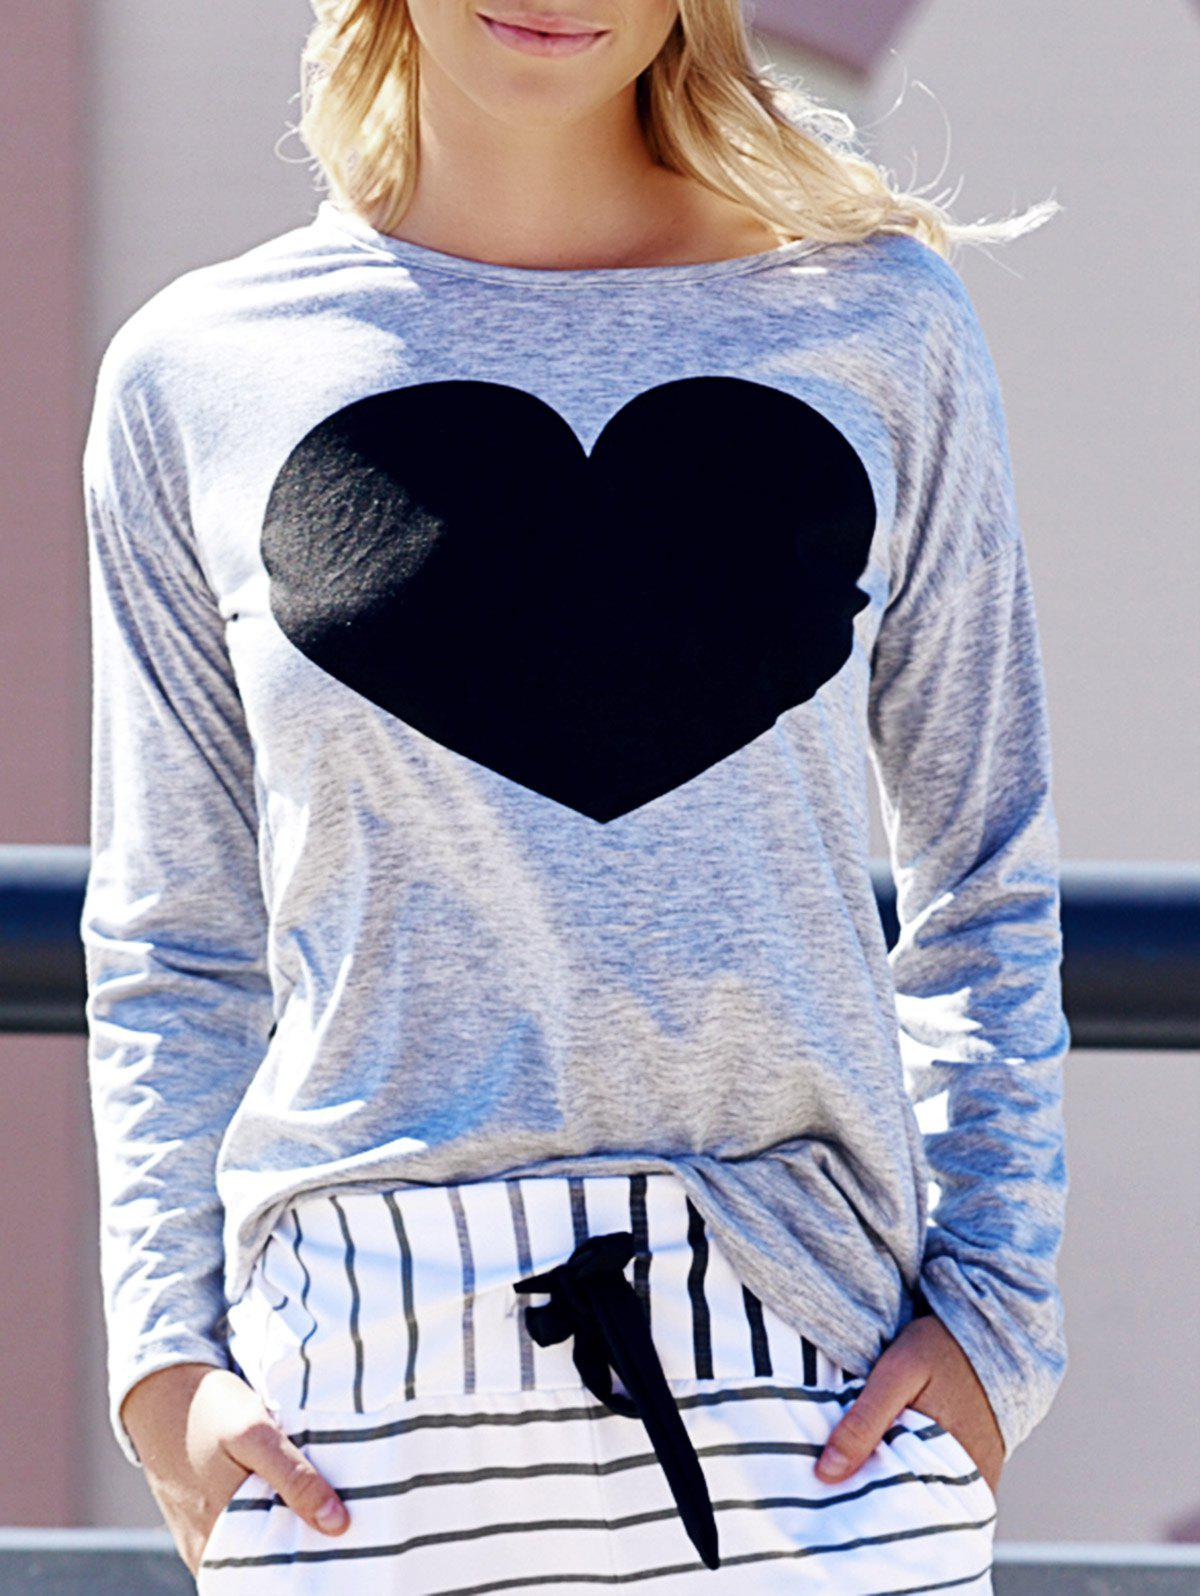 Women's Heart Pattern T-Shirt Long Sleeve Crew Neck Tops - LIGHT GRAY L